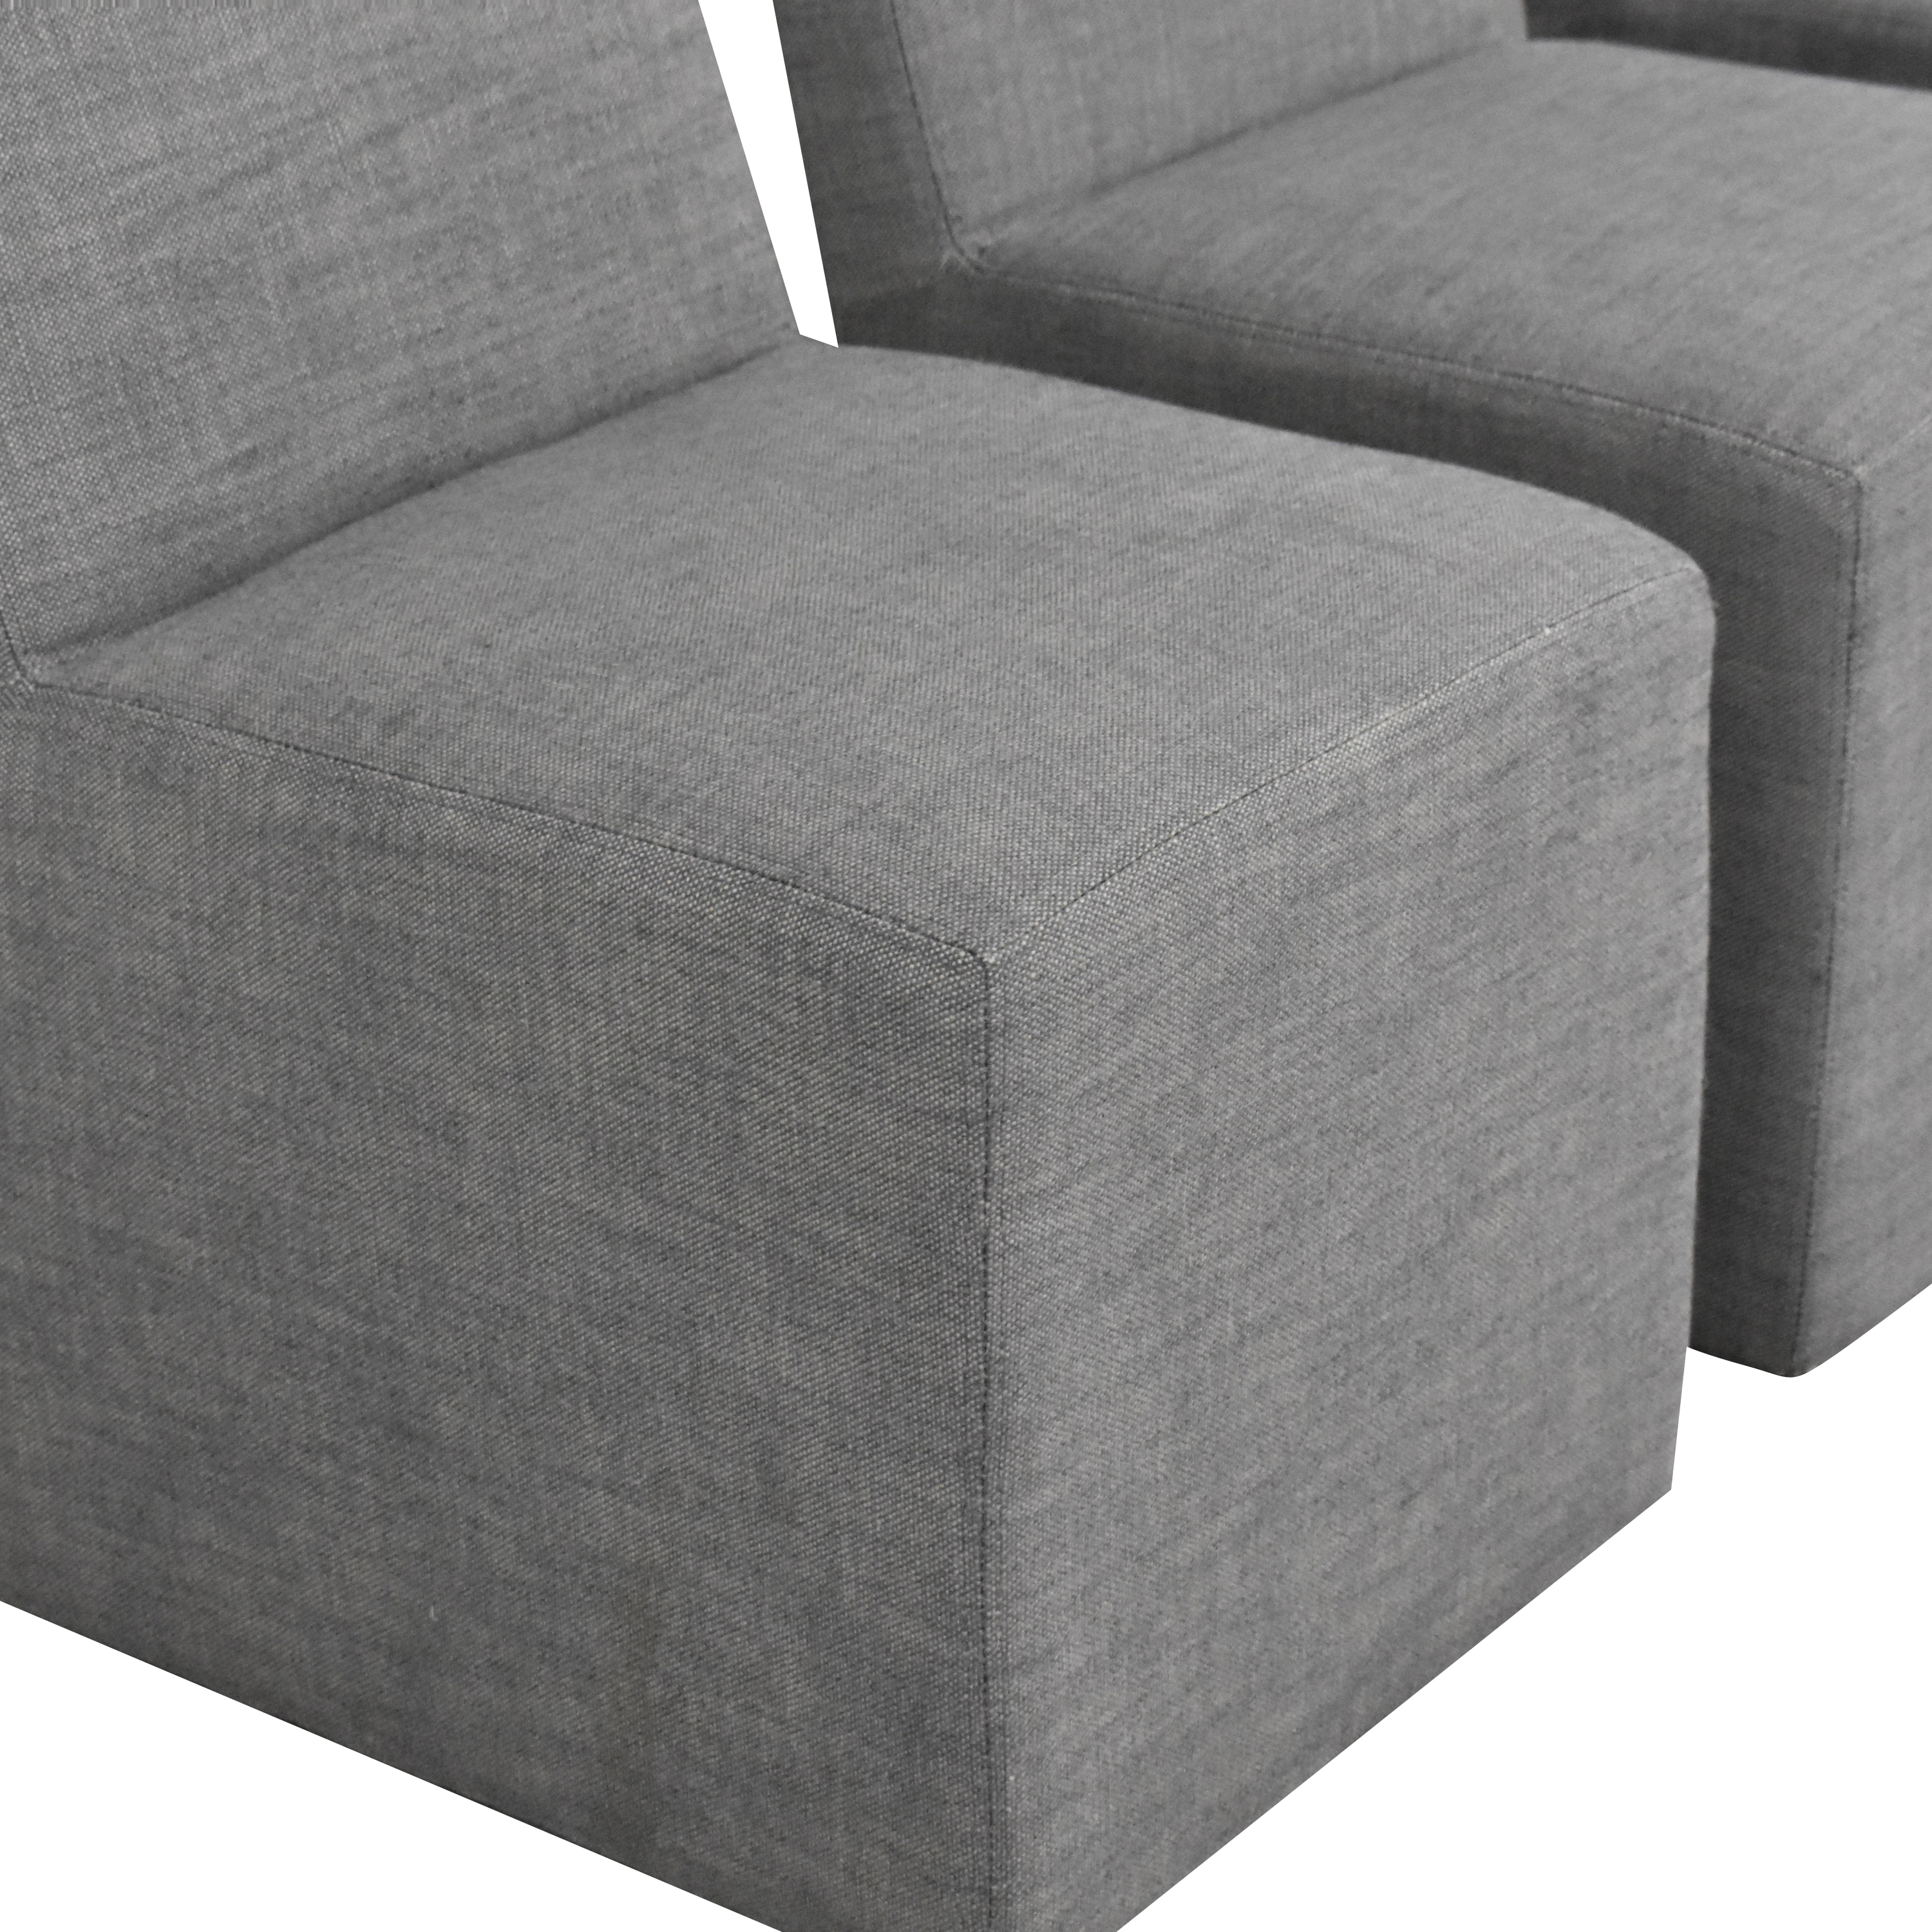 Restoration Hardware Restoration Hardware Ellison Fabric Side Chairs Chairs